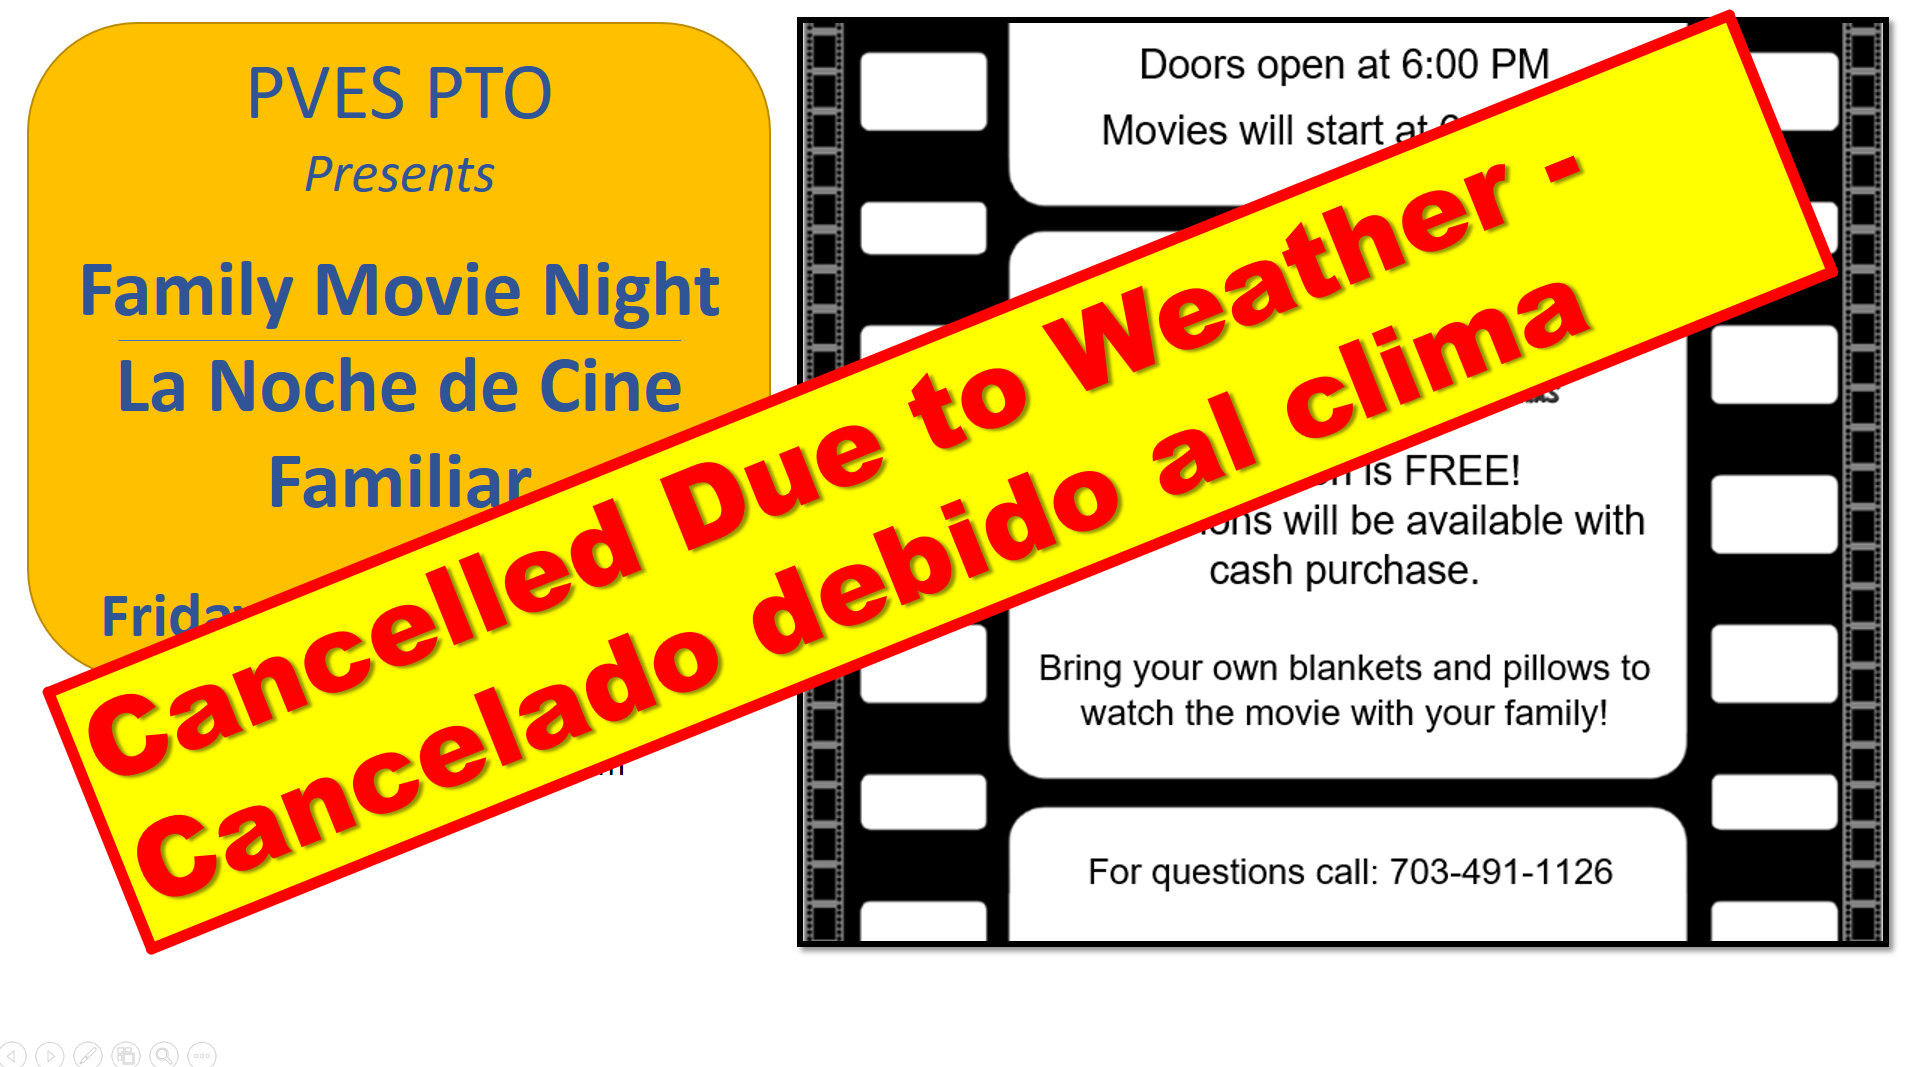 Family Movie Night is Cancelled due to weather